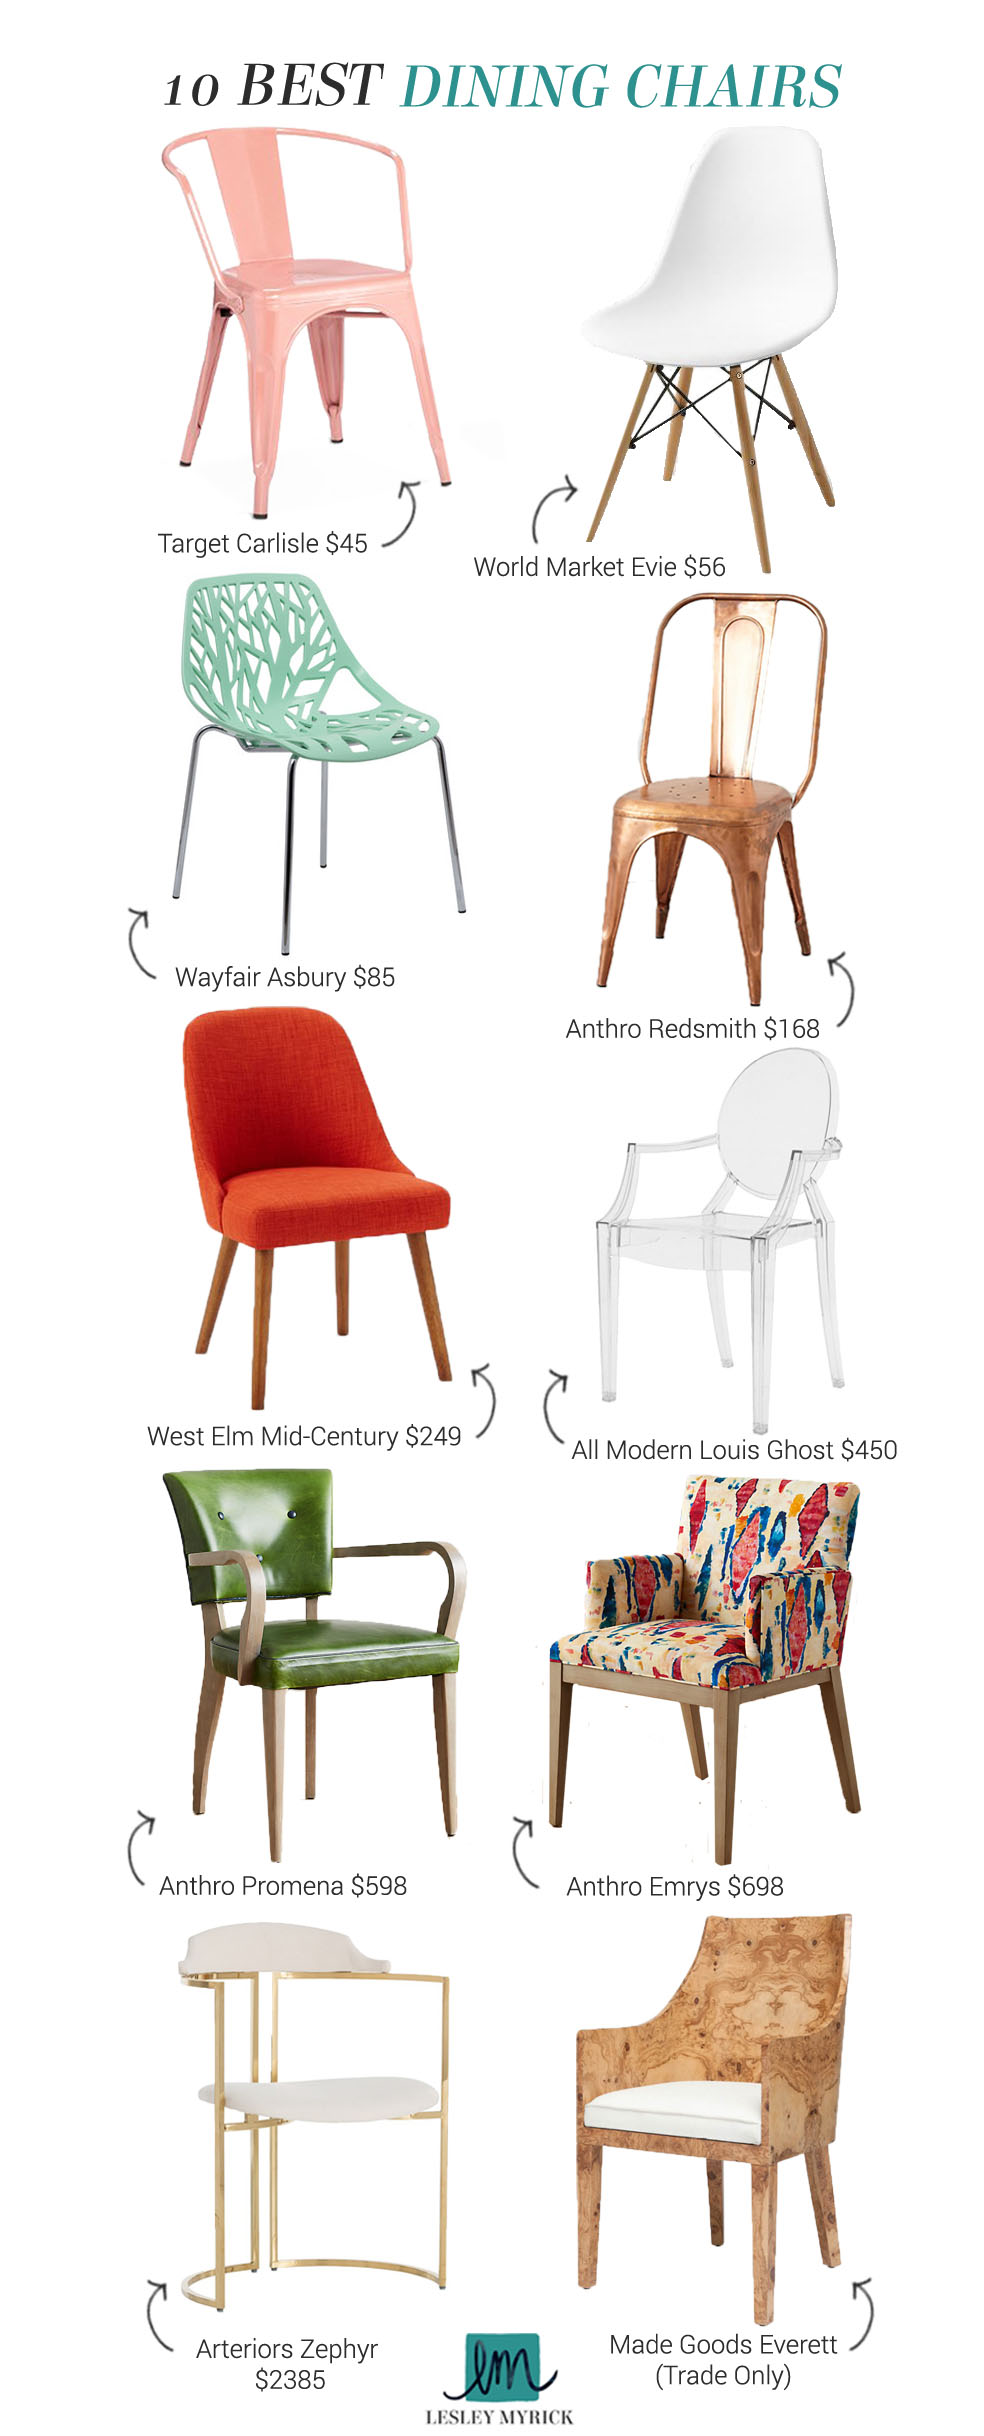 Lesley's Picks: 10 Best Dining Chairs